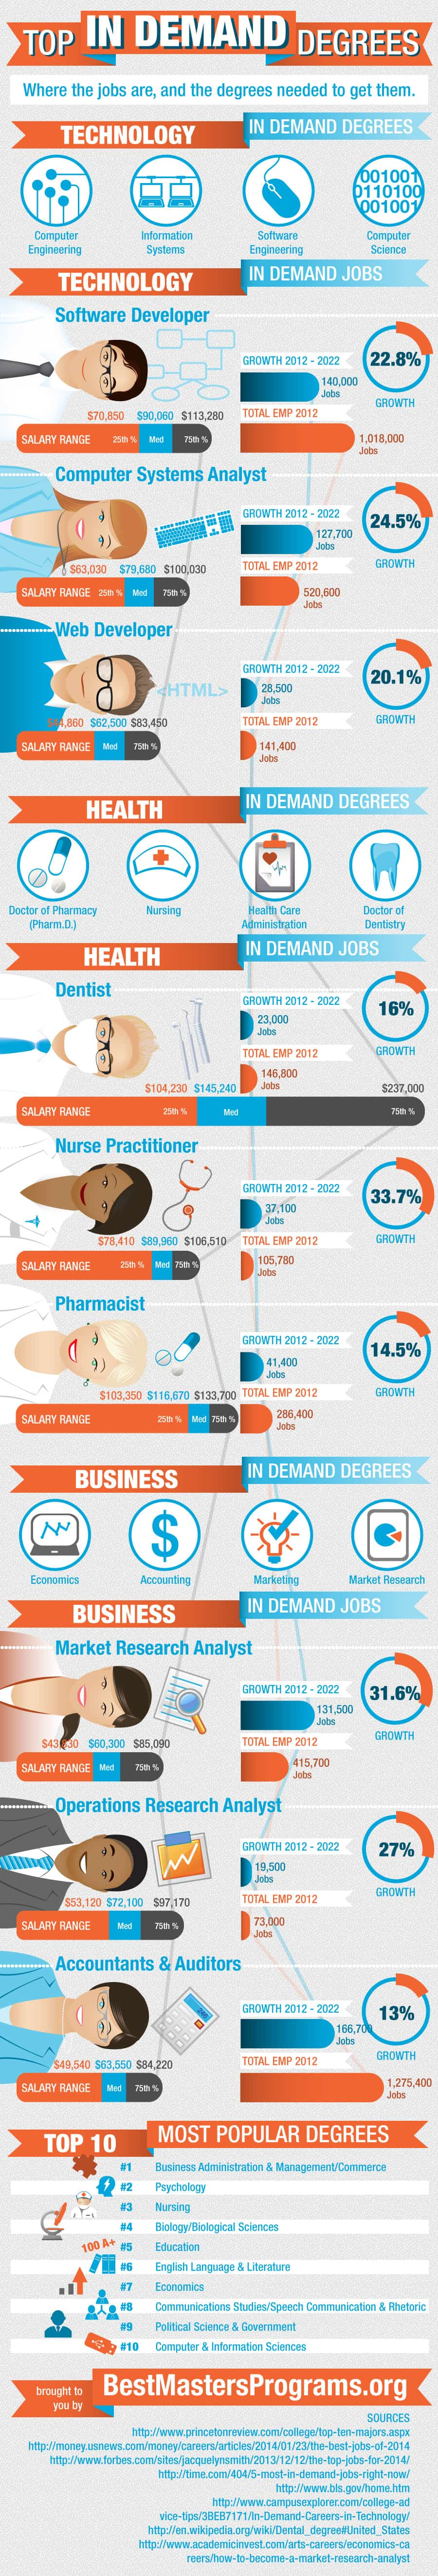 top master's degrees in demand